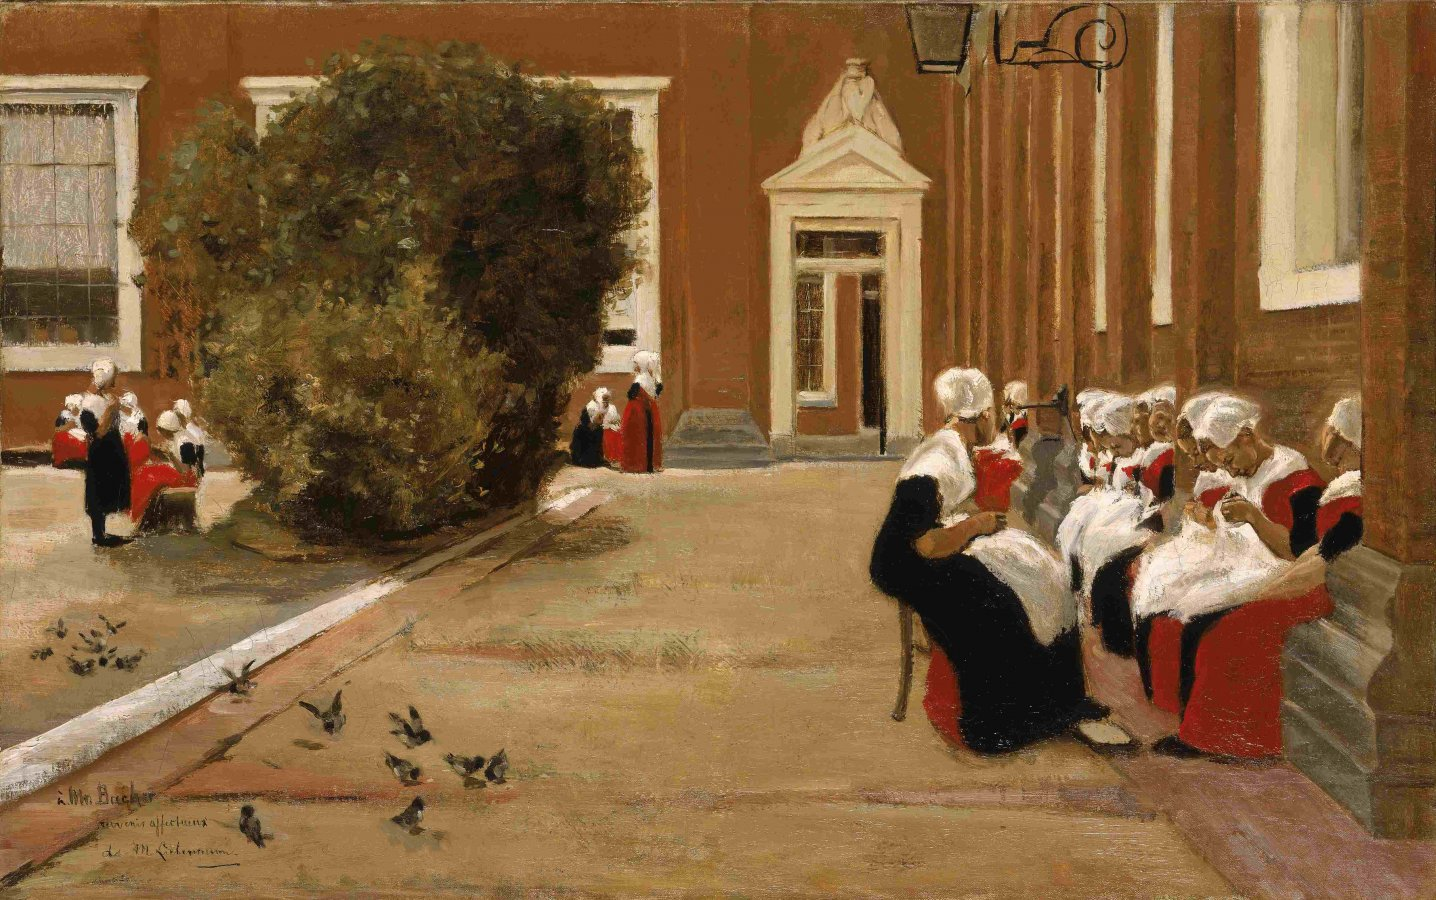 Max Liebermann, Courtyard of the Orphanage in Amsterdam, 1876 © Arp Museum Bahnhof Rolandseck / Rau Collection für UNICEF, Photo: Peter Schälchli, Zurich